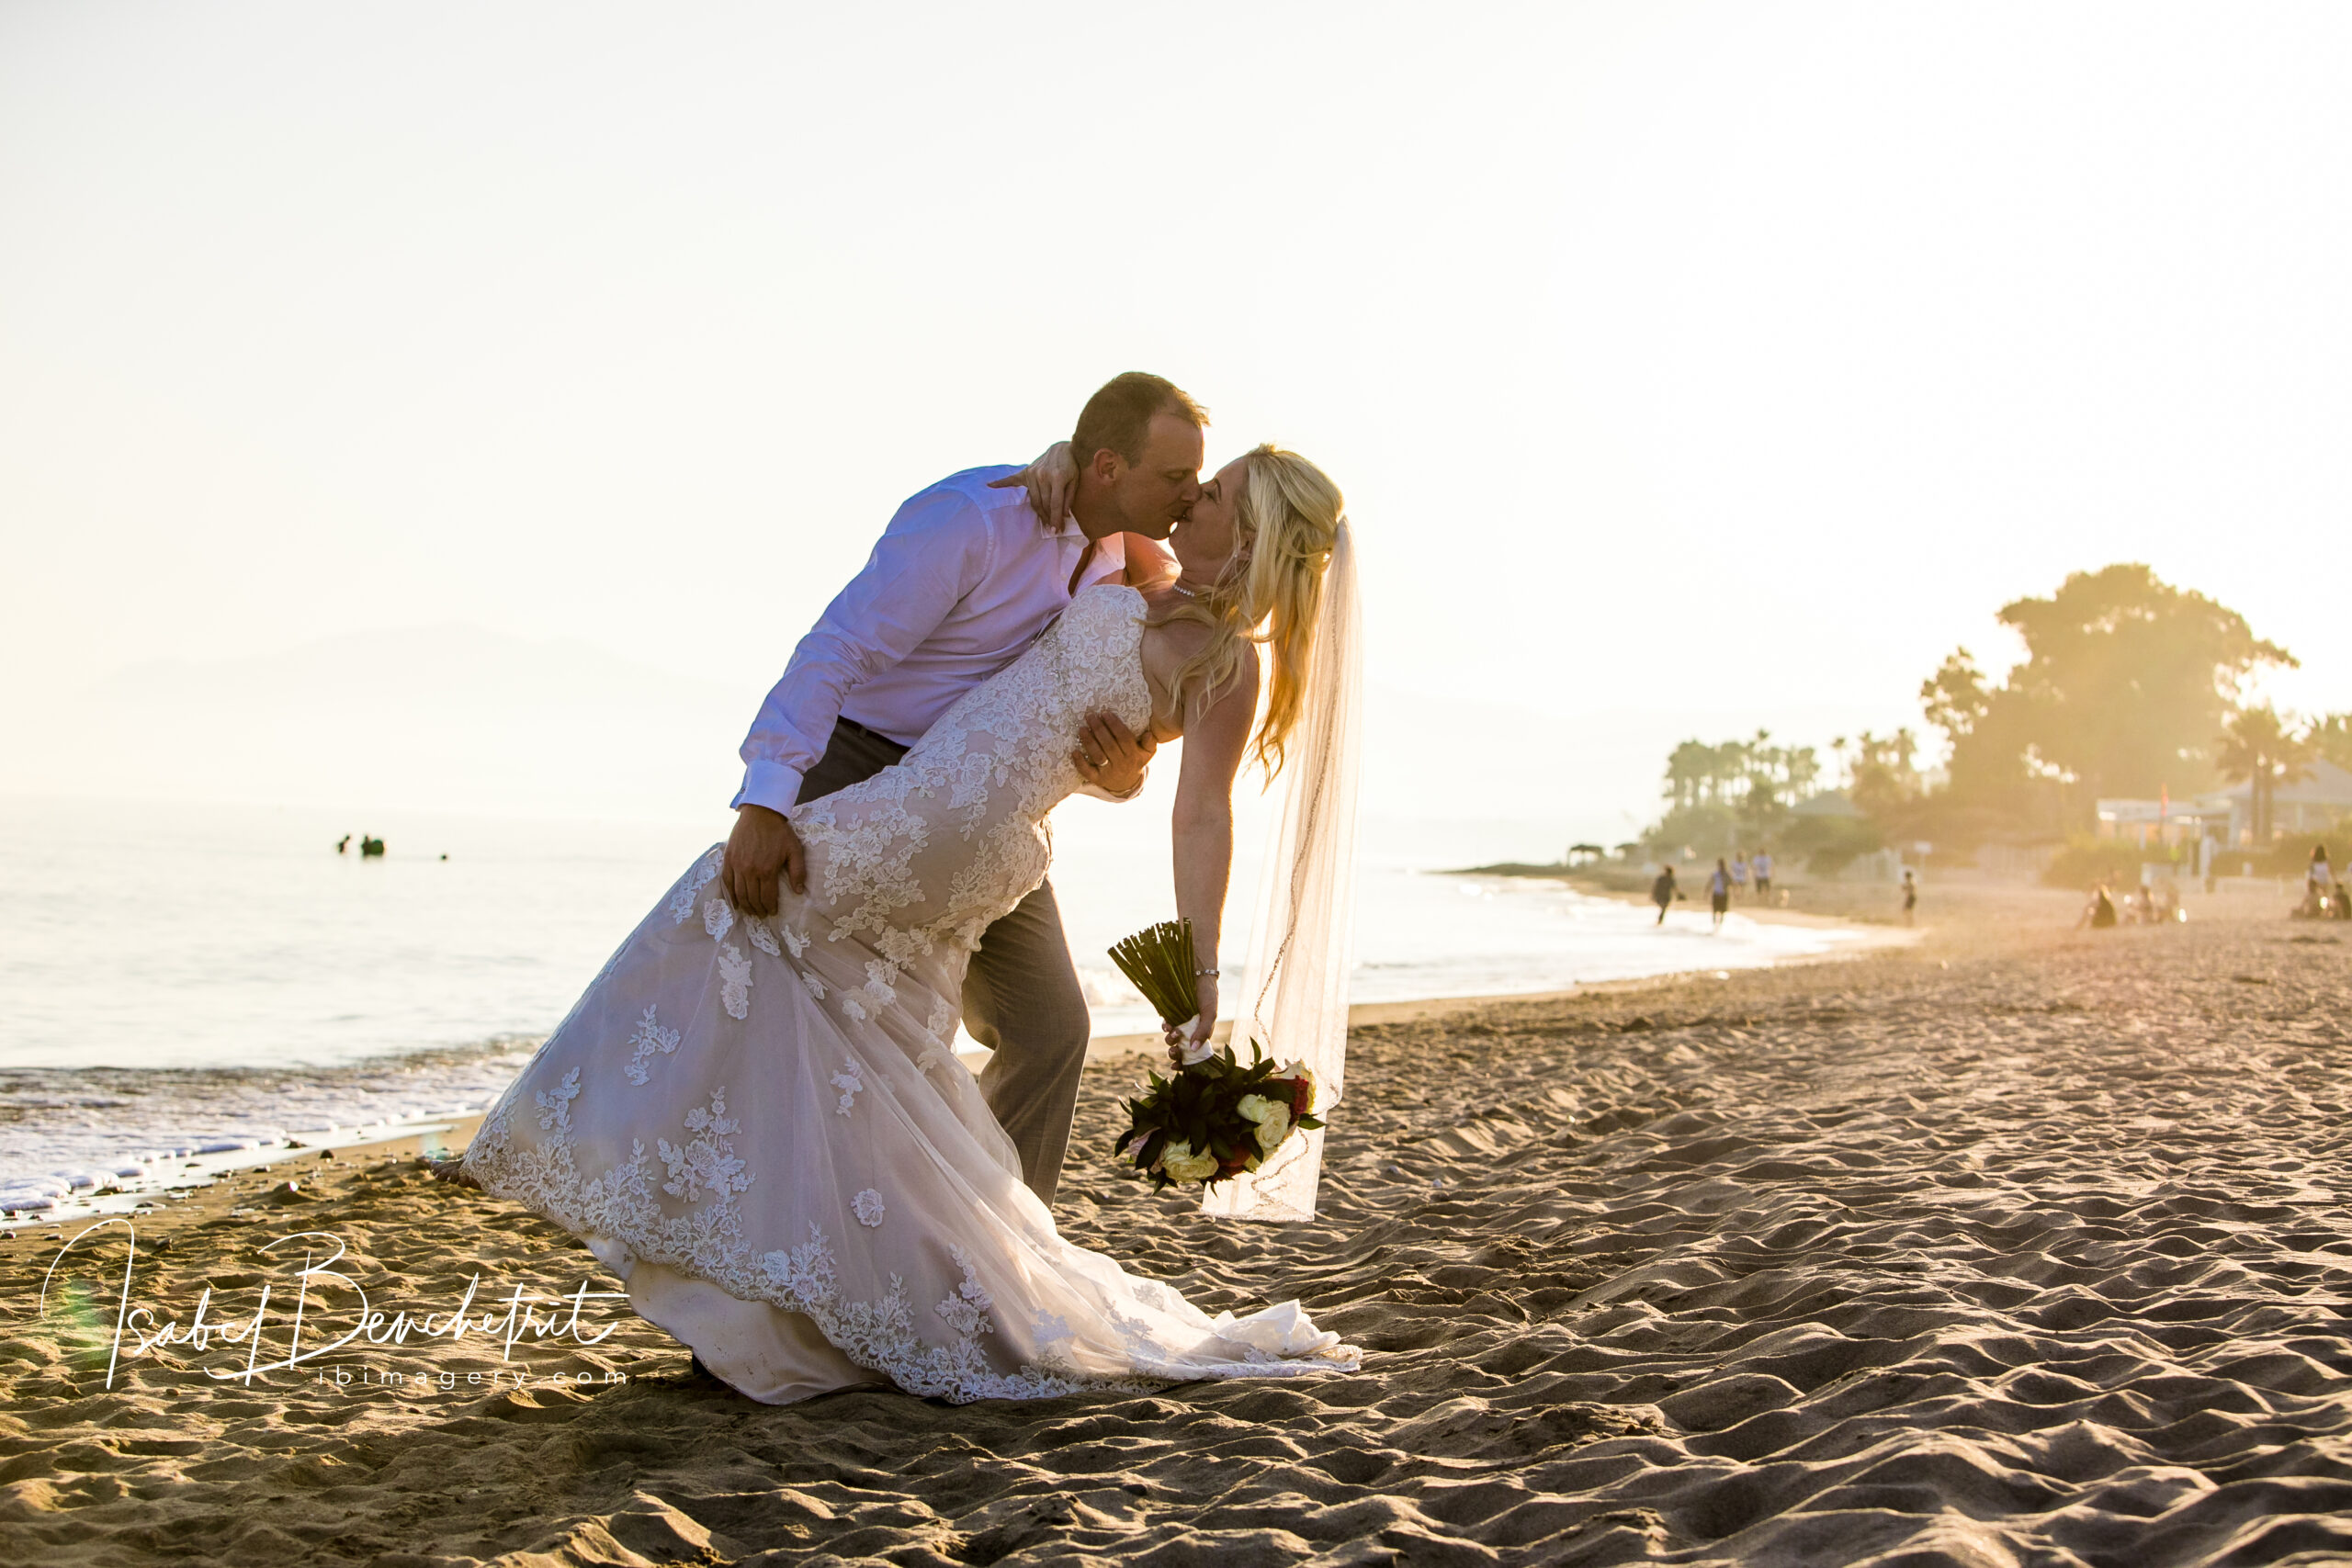 The bride and groom on the beach